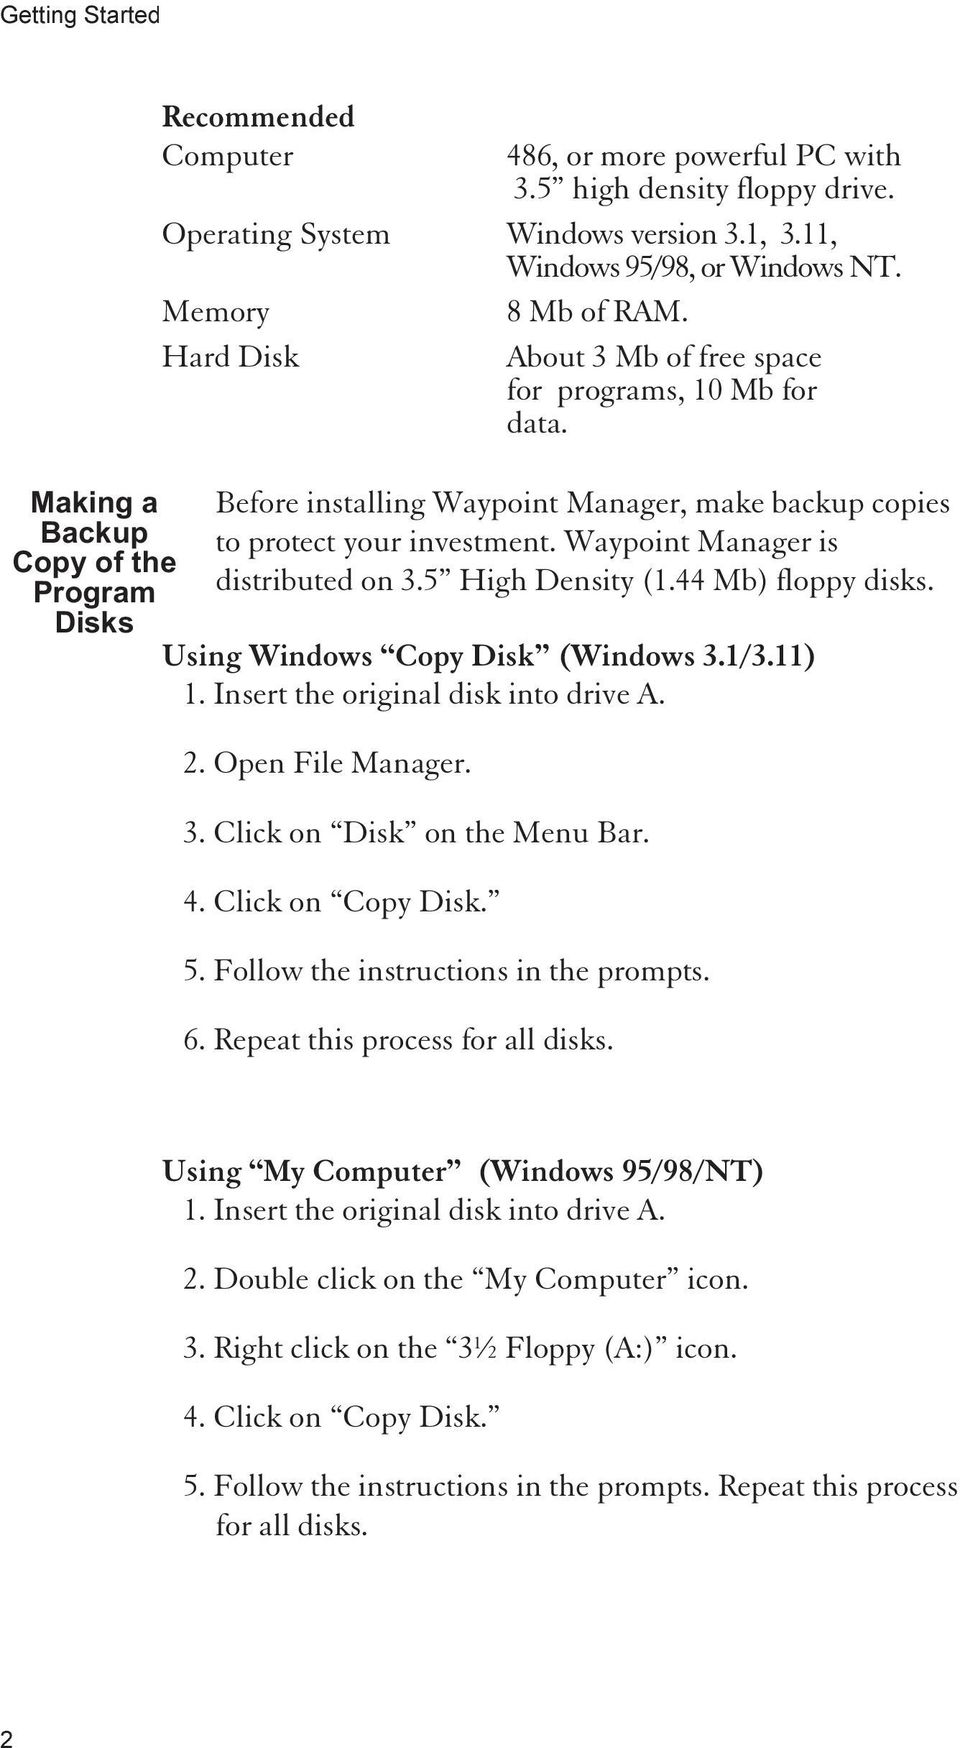 Before installing Waypoint Manager, make backup copies to protect your investment. Waypoint Manager is distributed on 3.5 High Density (1.44 Mb) floppy disks. Using Windows Copy Disk (Windows 3.1/3.